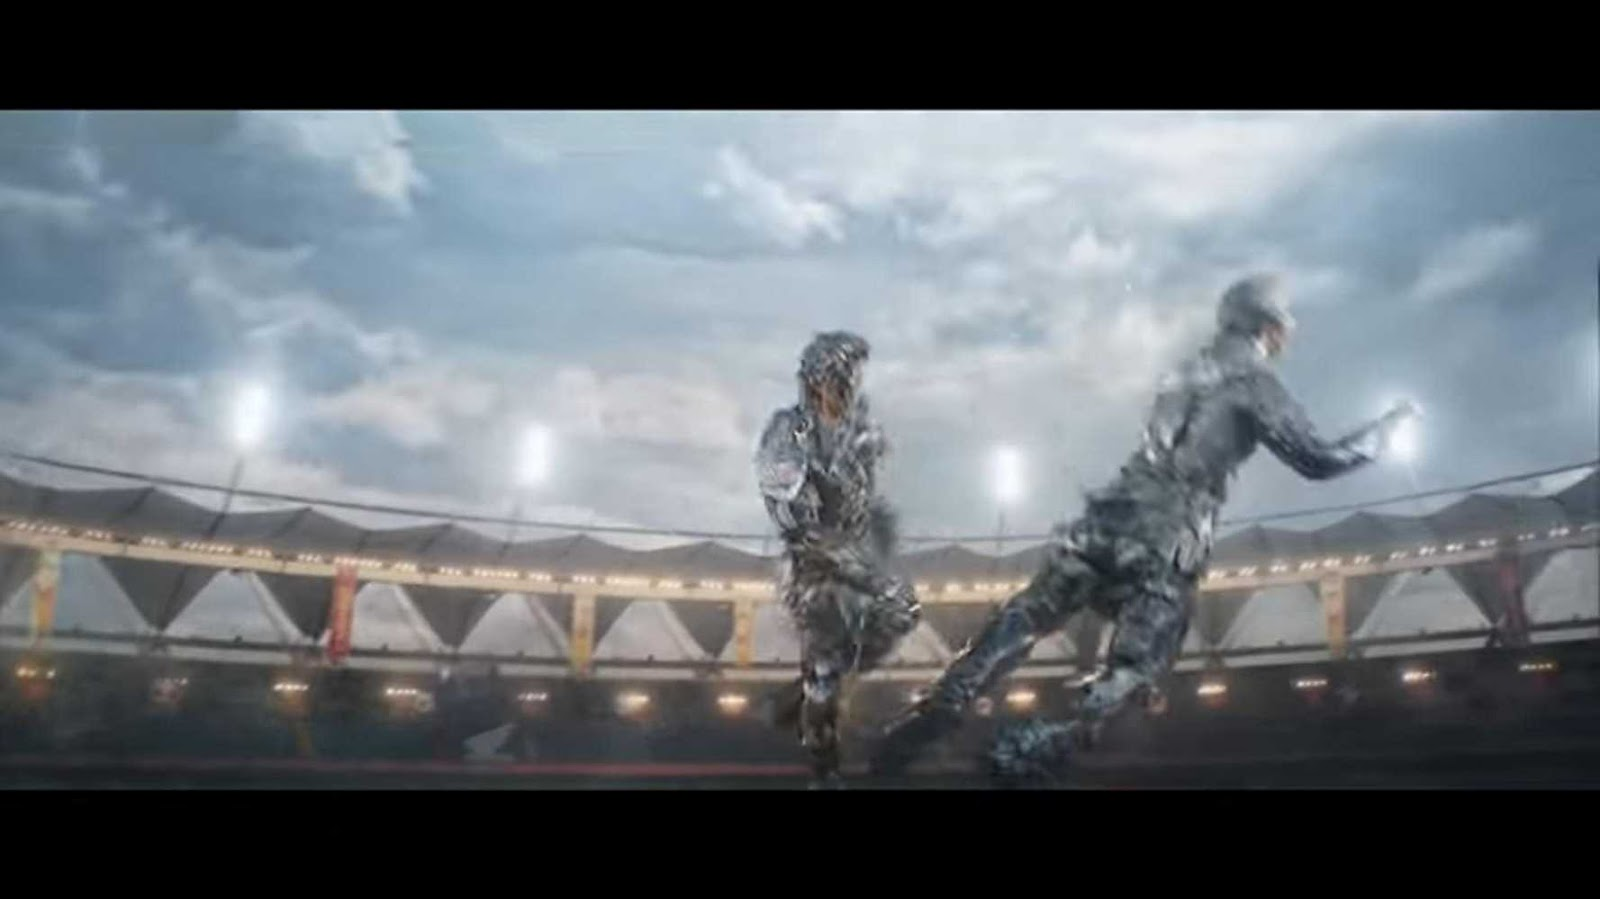 Robot 2.0 Full Movie Download Hd 480p || Movies Counter 3